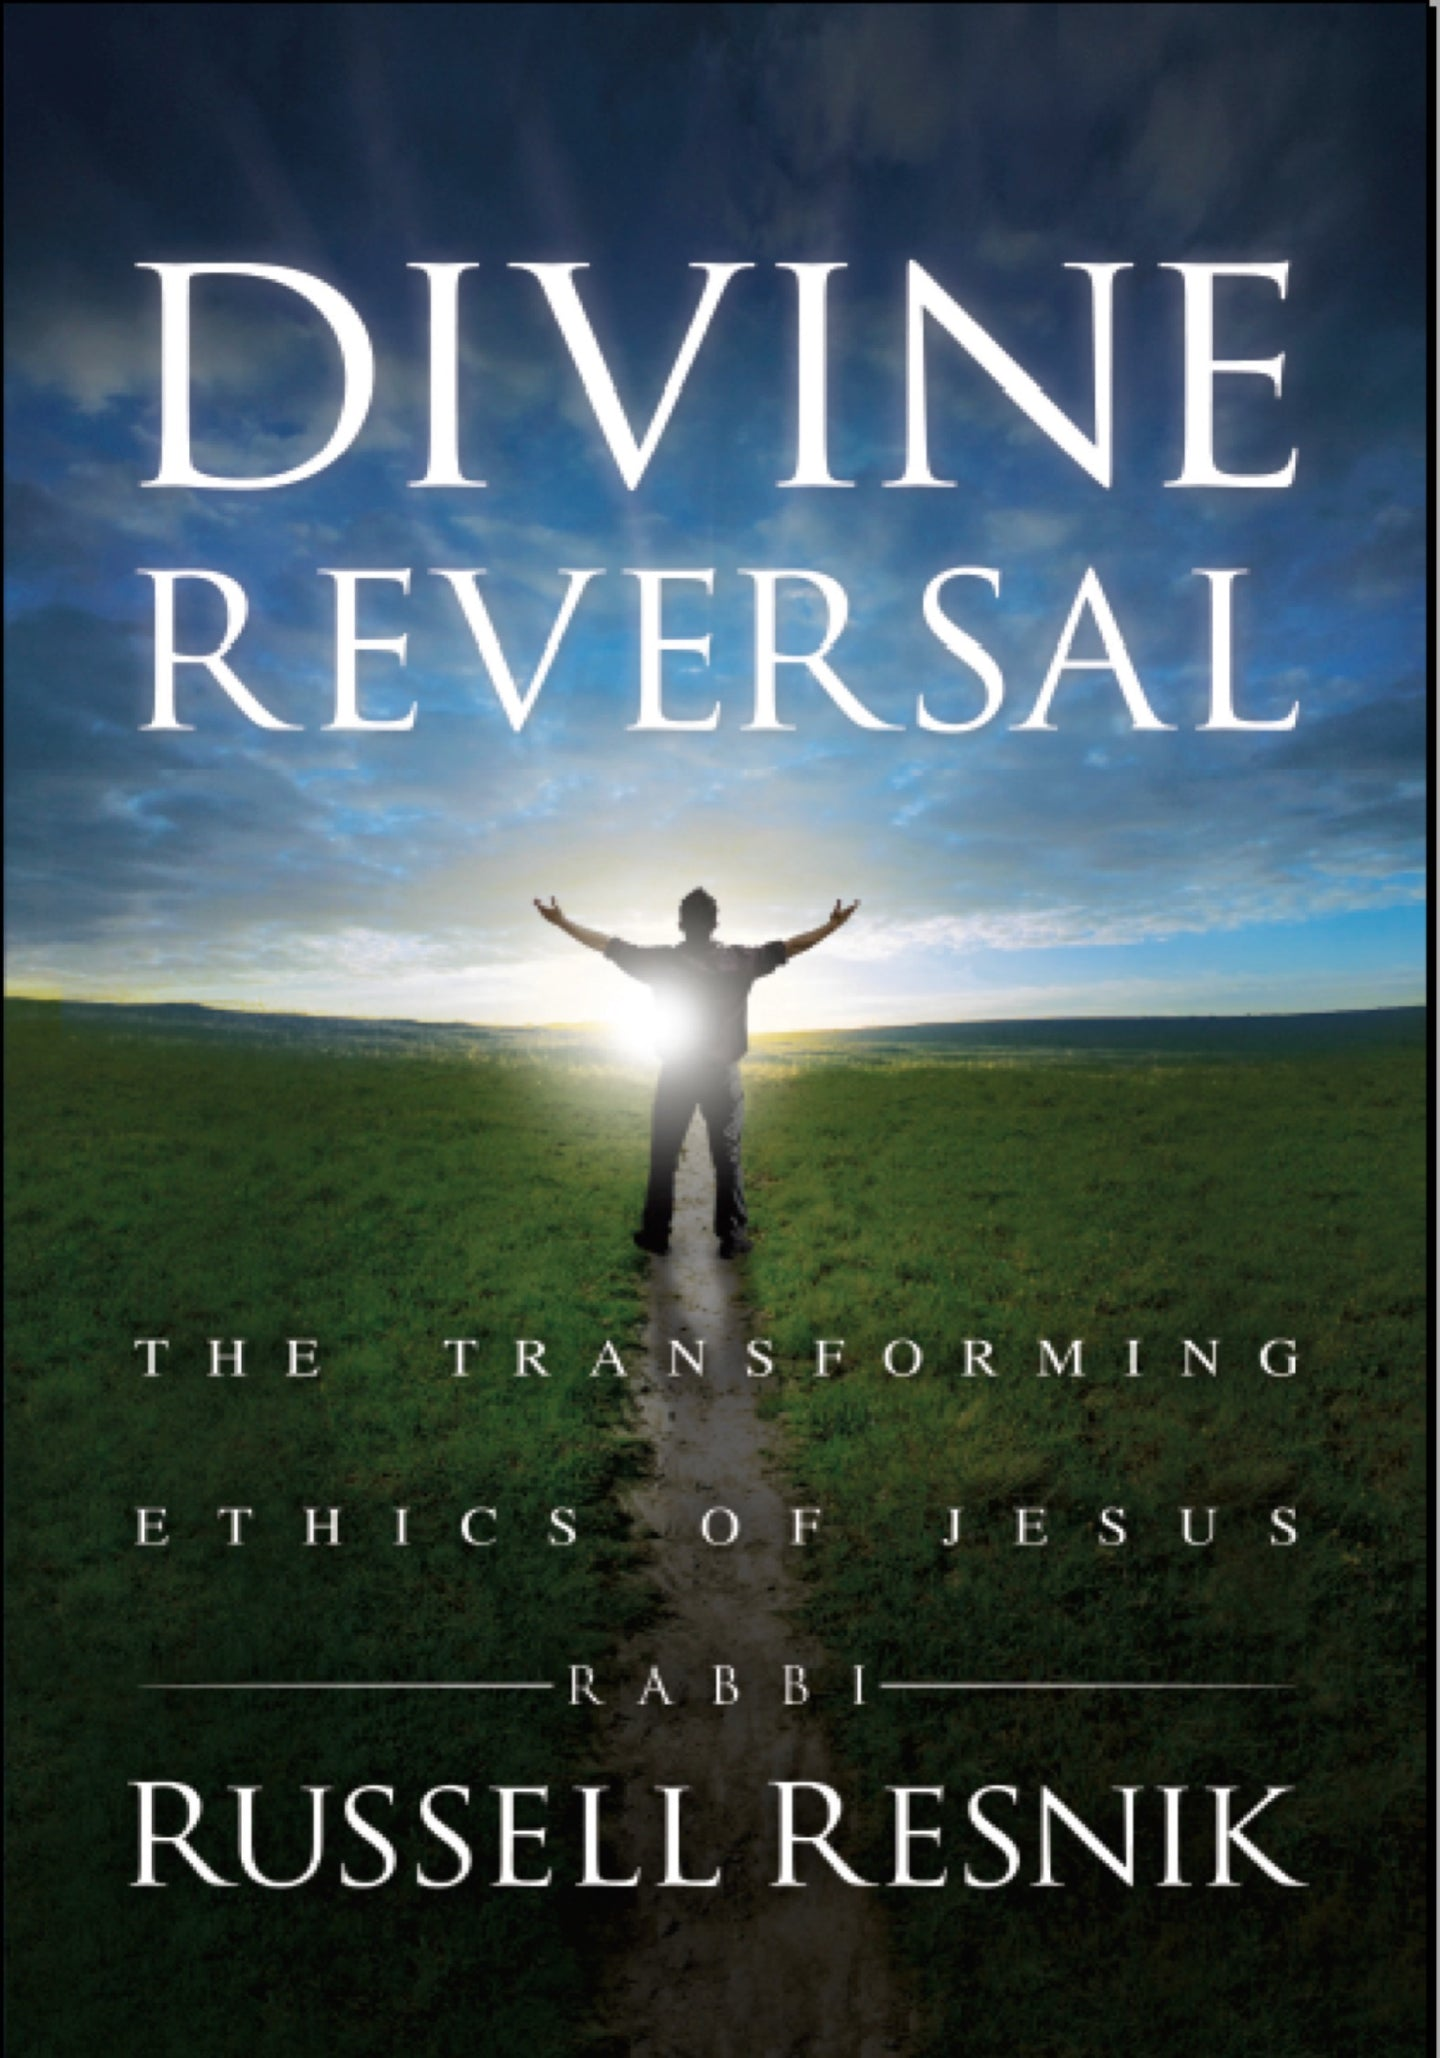 Divine Reversal: The Transforming Ethics of Jesus by Rabbi Russell Resnik